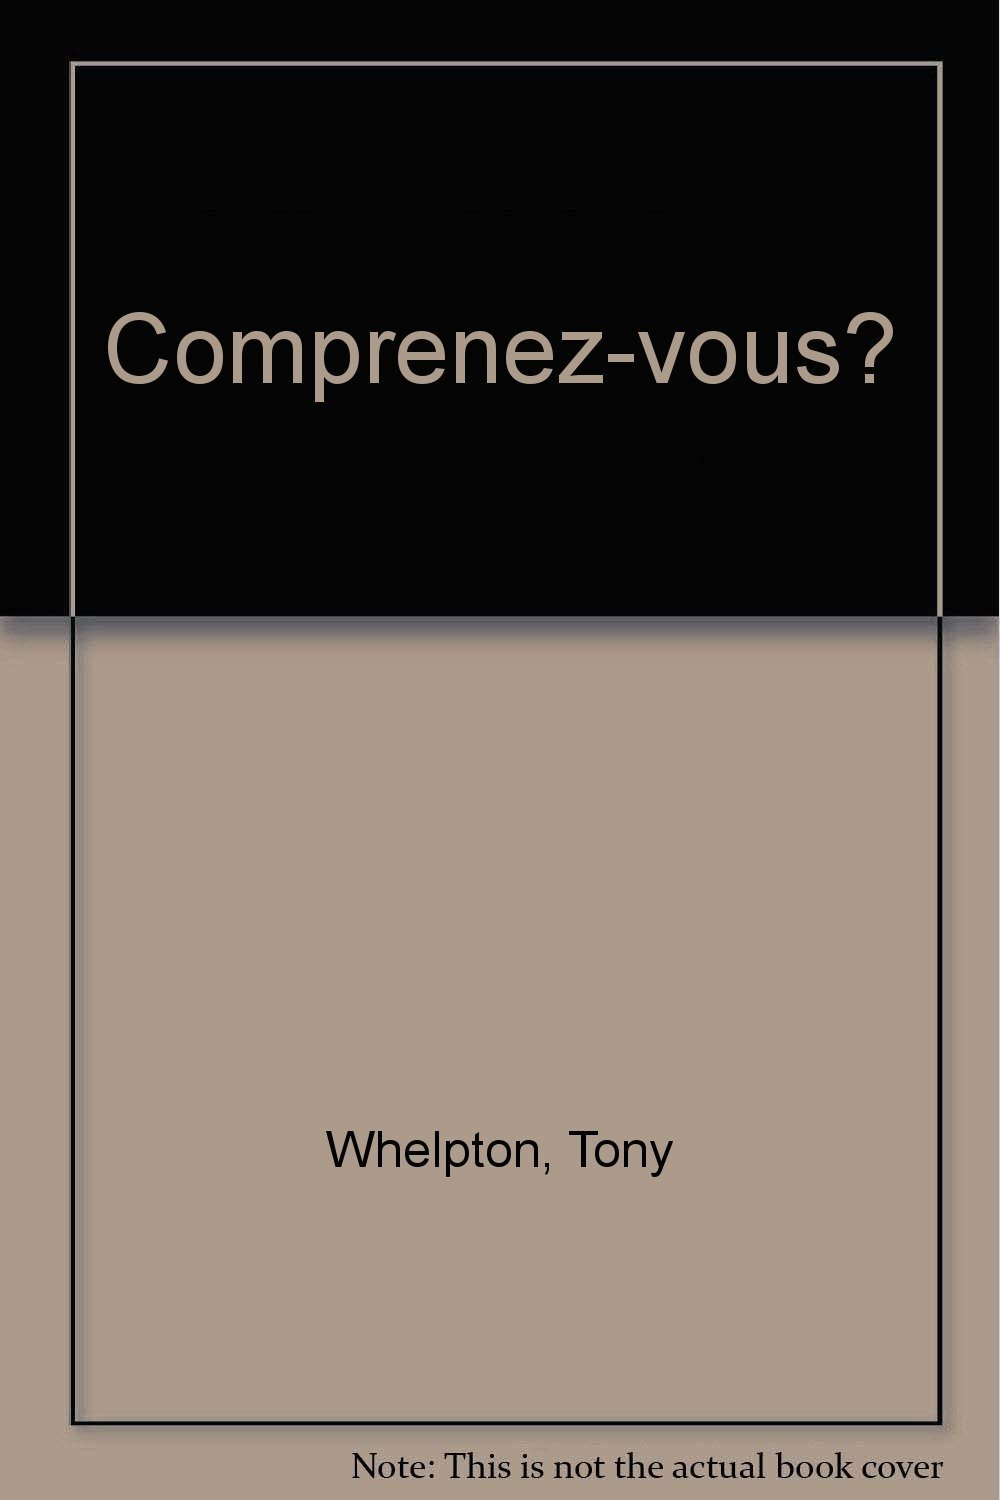 Comprenez-vous? written by